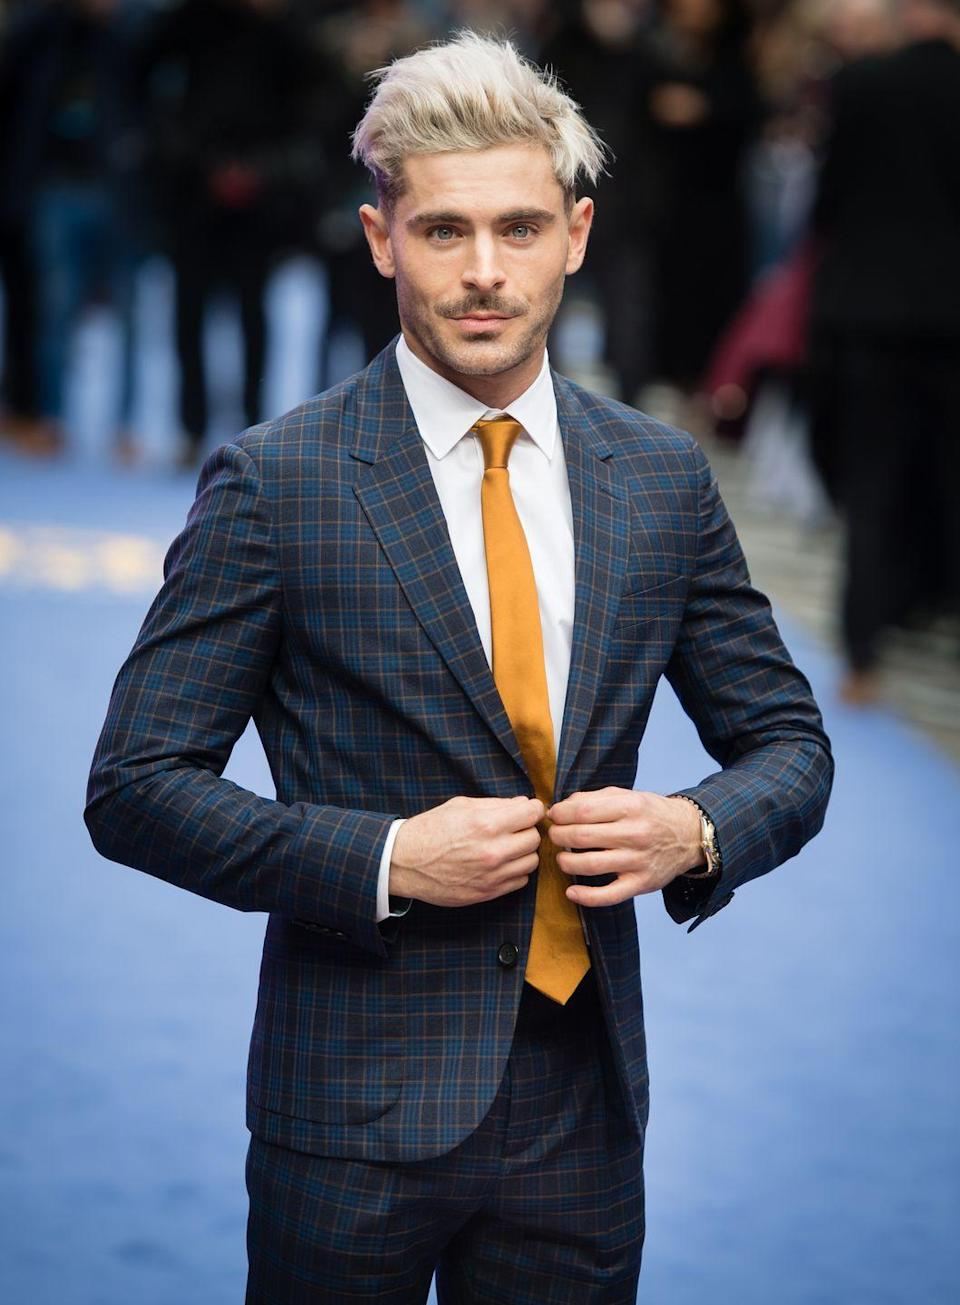 <p>After growing up in the public eye, Efron (now 32) is a full-fledged movie star. Most recently, he garnered praise for his portrayal of serial killer Ted Bundy in Netflix's <em>Extremely Wicked, Shockingly Evil and Vile</em>.</p>